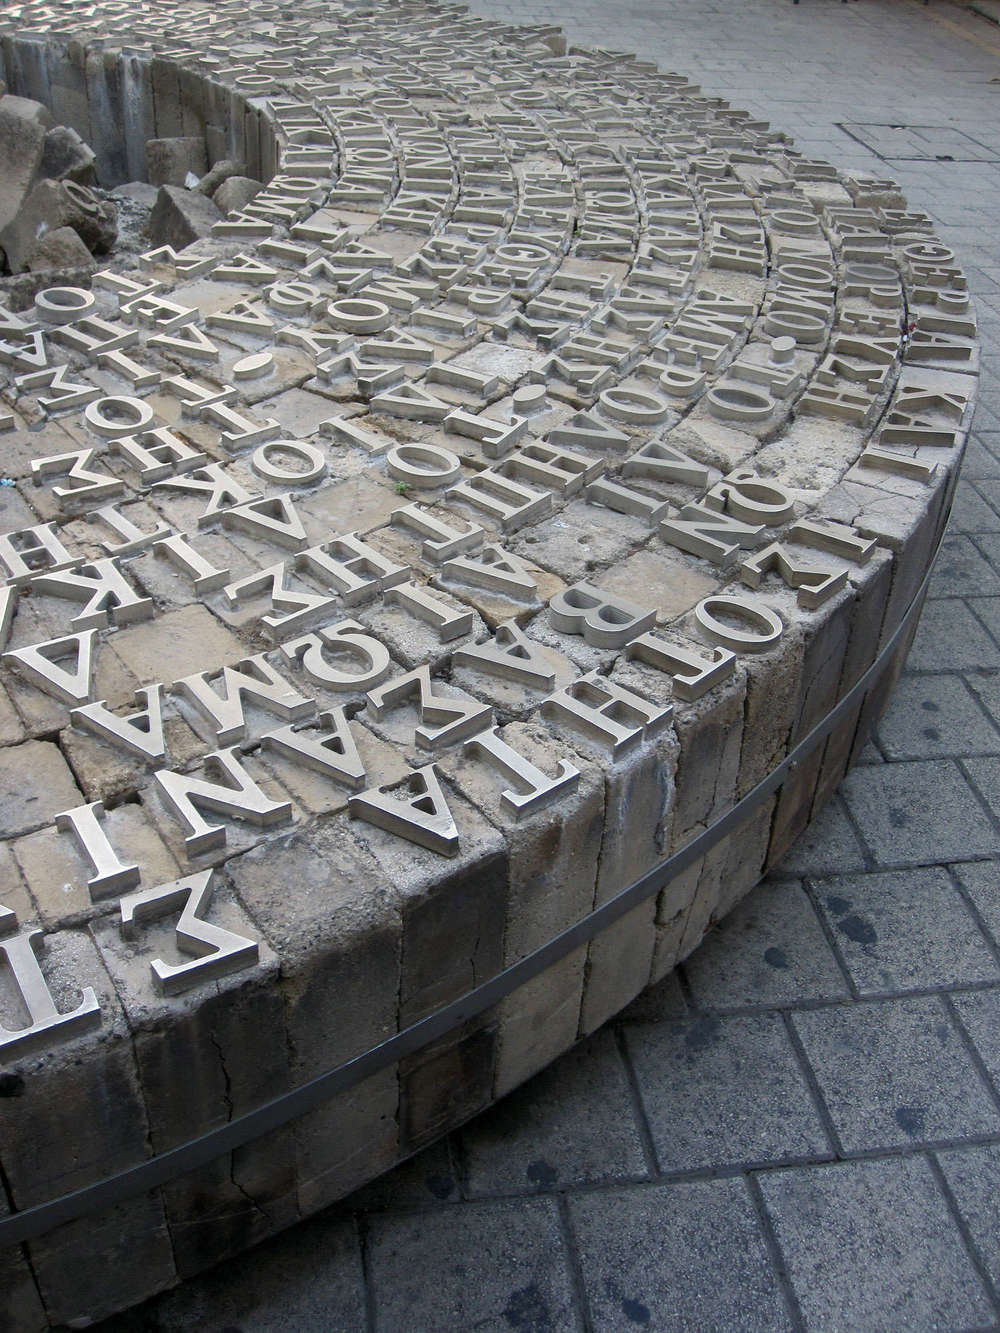 These enormous cast concrete types carry a hard message